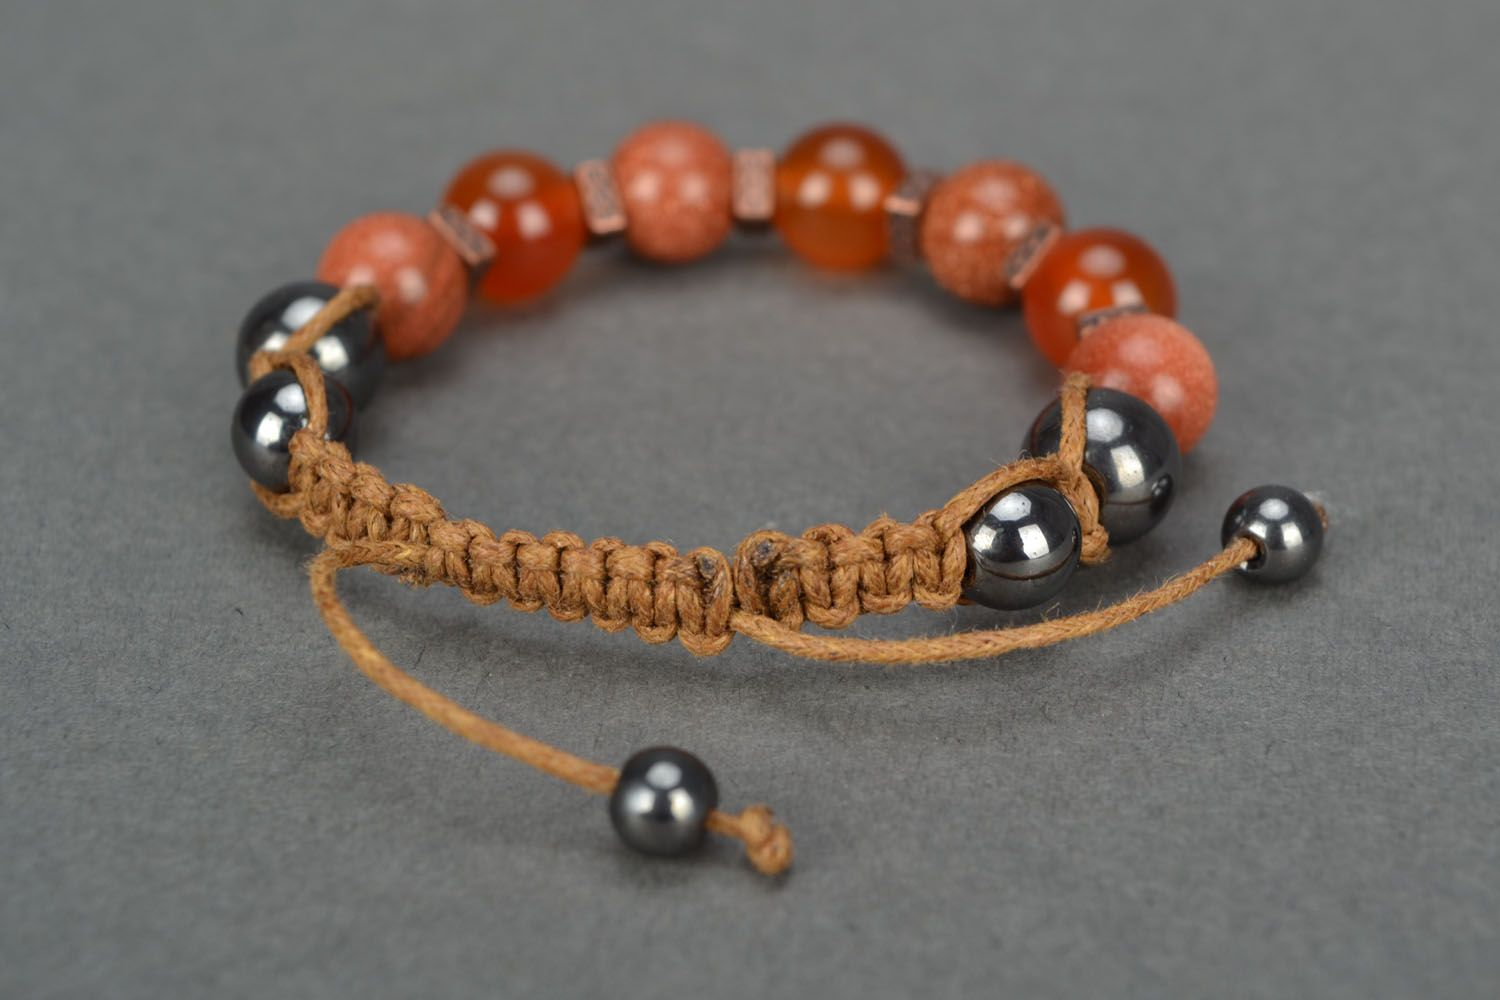 Wrist bracelet with natural stones photo 4